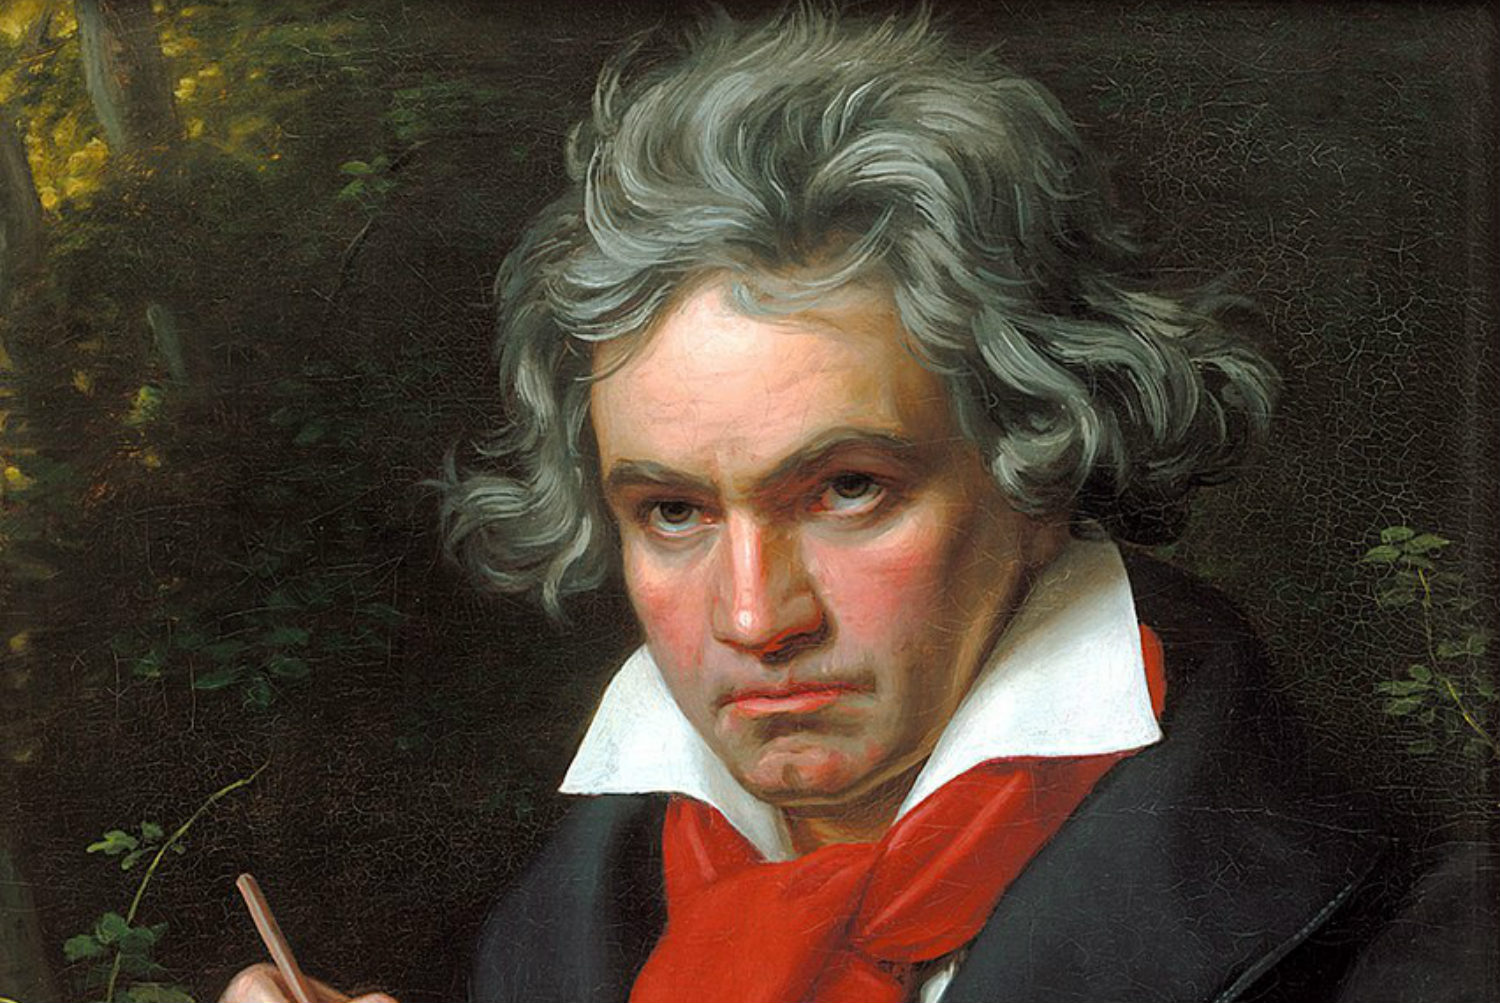 The Legend: Ludwig van Beethoven